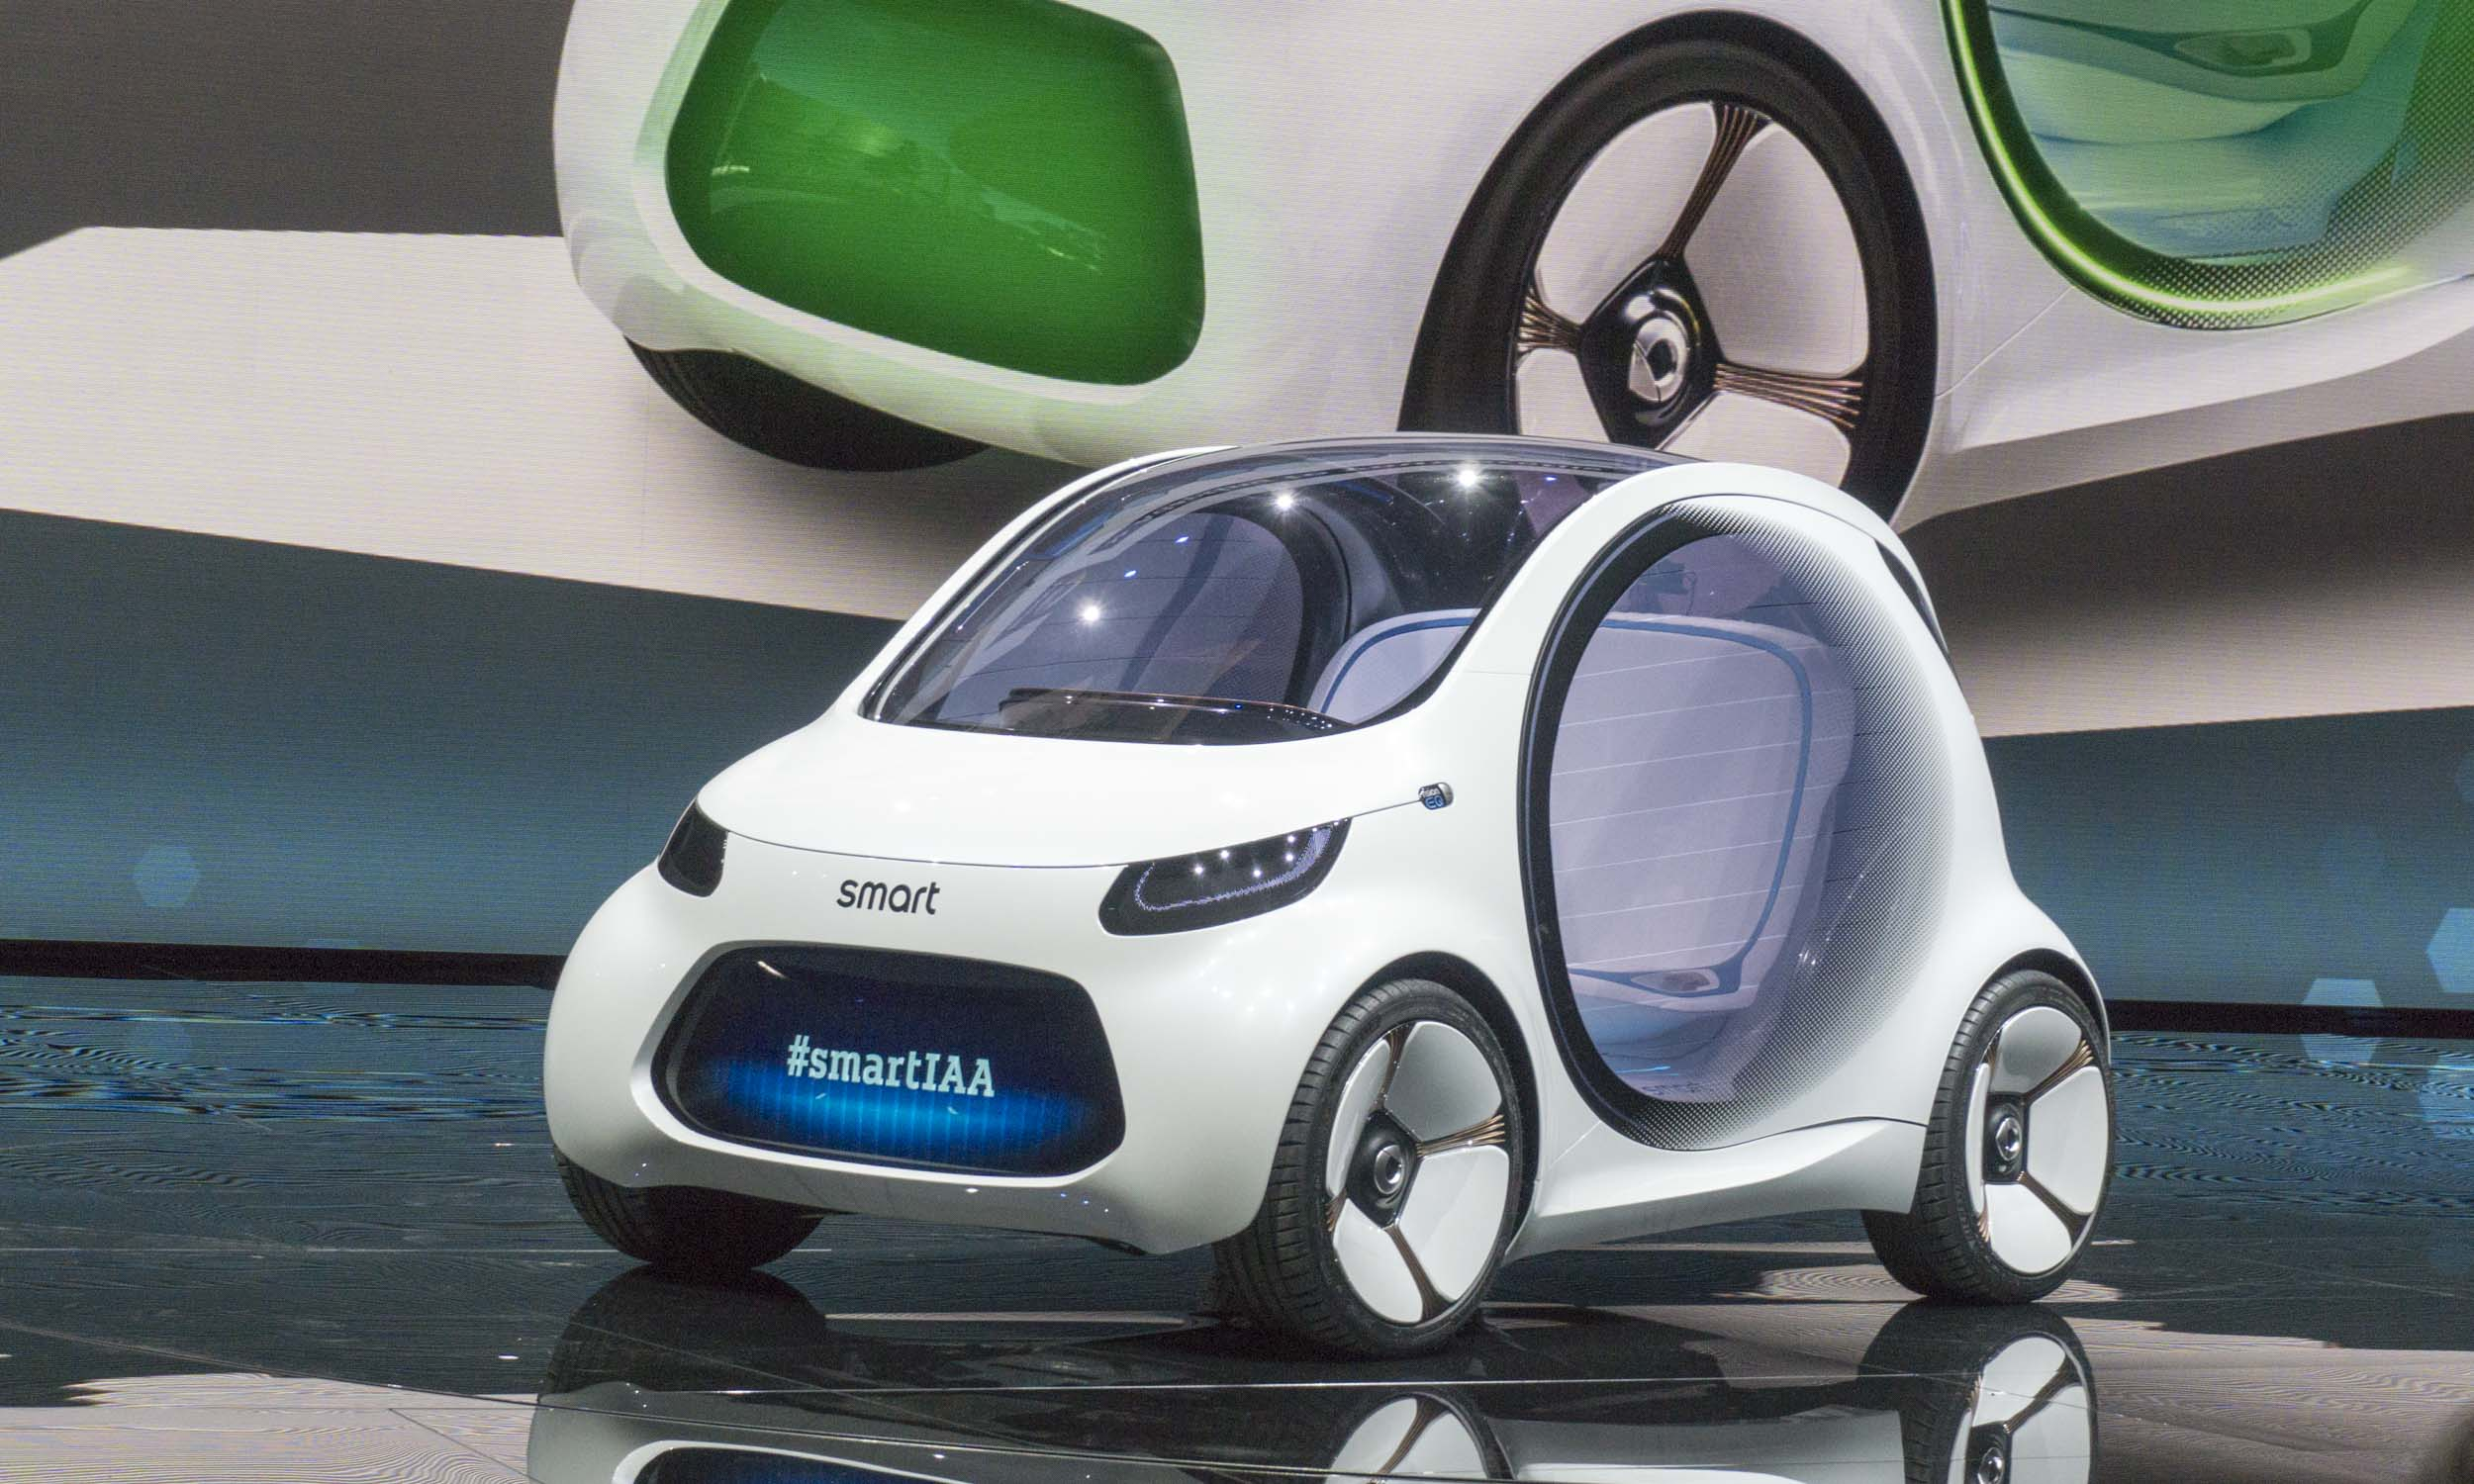 Top Concept Cars Of 2017 Autonxt The Electric Car Chevrolet Fnr Perry Stern Automotive Content Experience